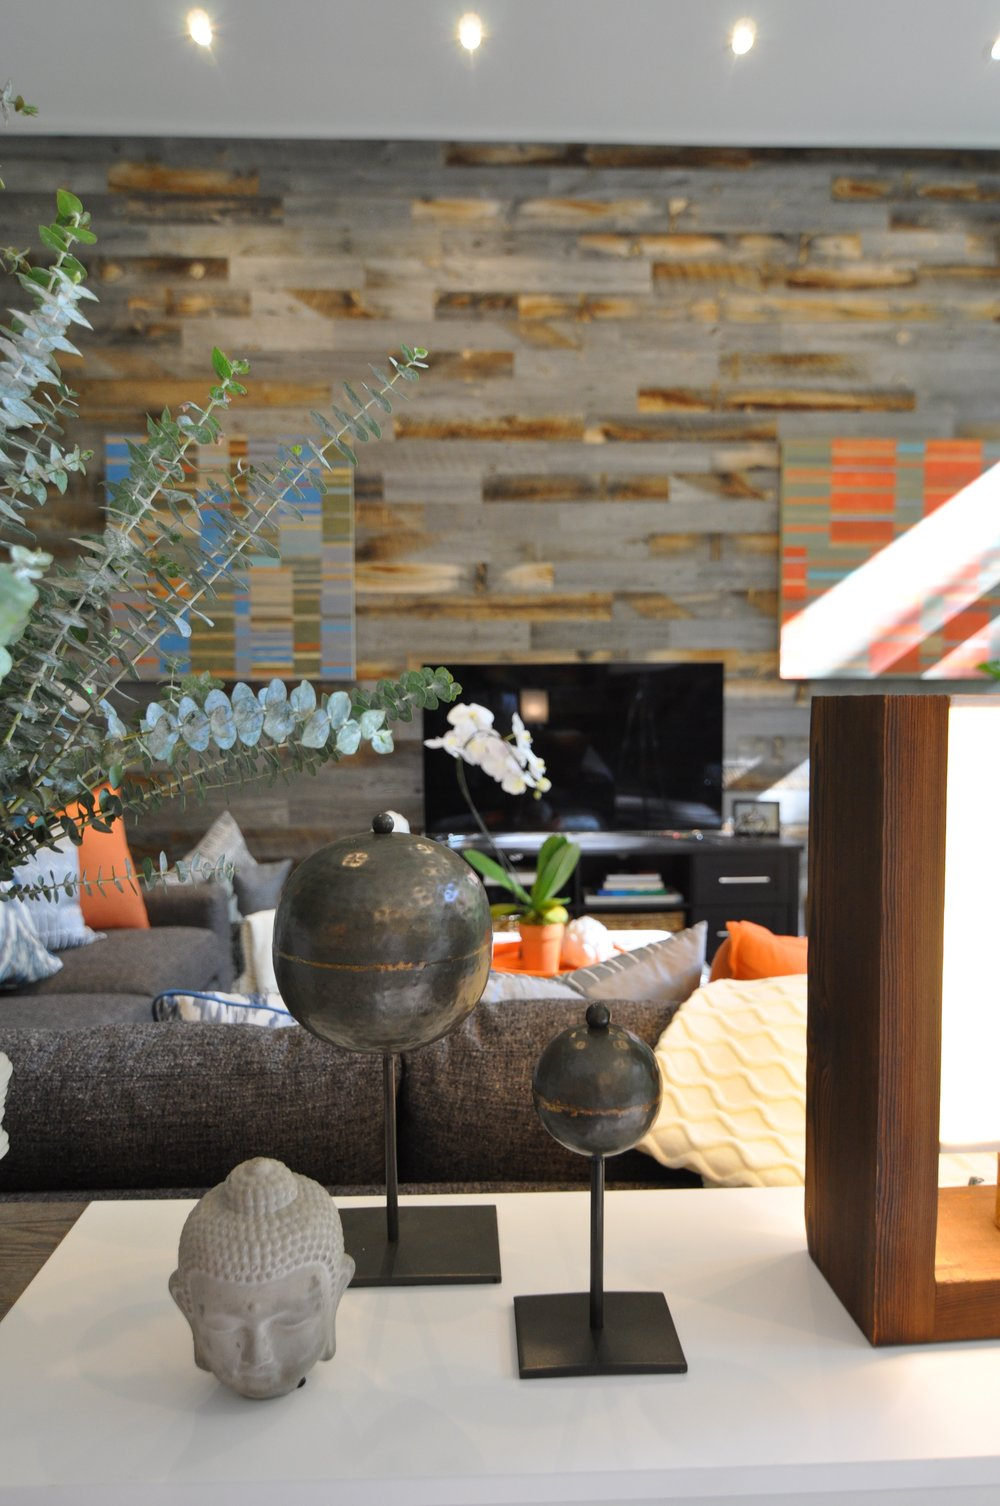 Kim A Mitchell_Design Lead_HGTV_The Property Brothers_Season 6_Episode 9_Console Close-up_Buddah_Accessories_2017_Global_Modern.jpg